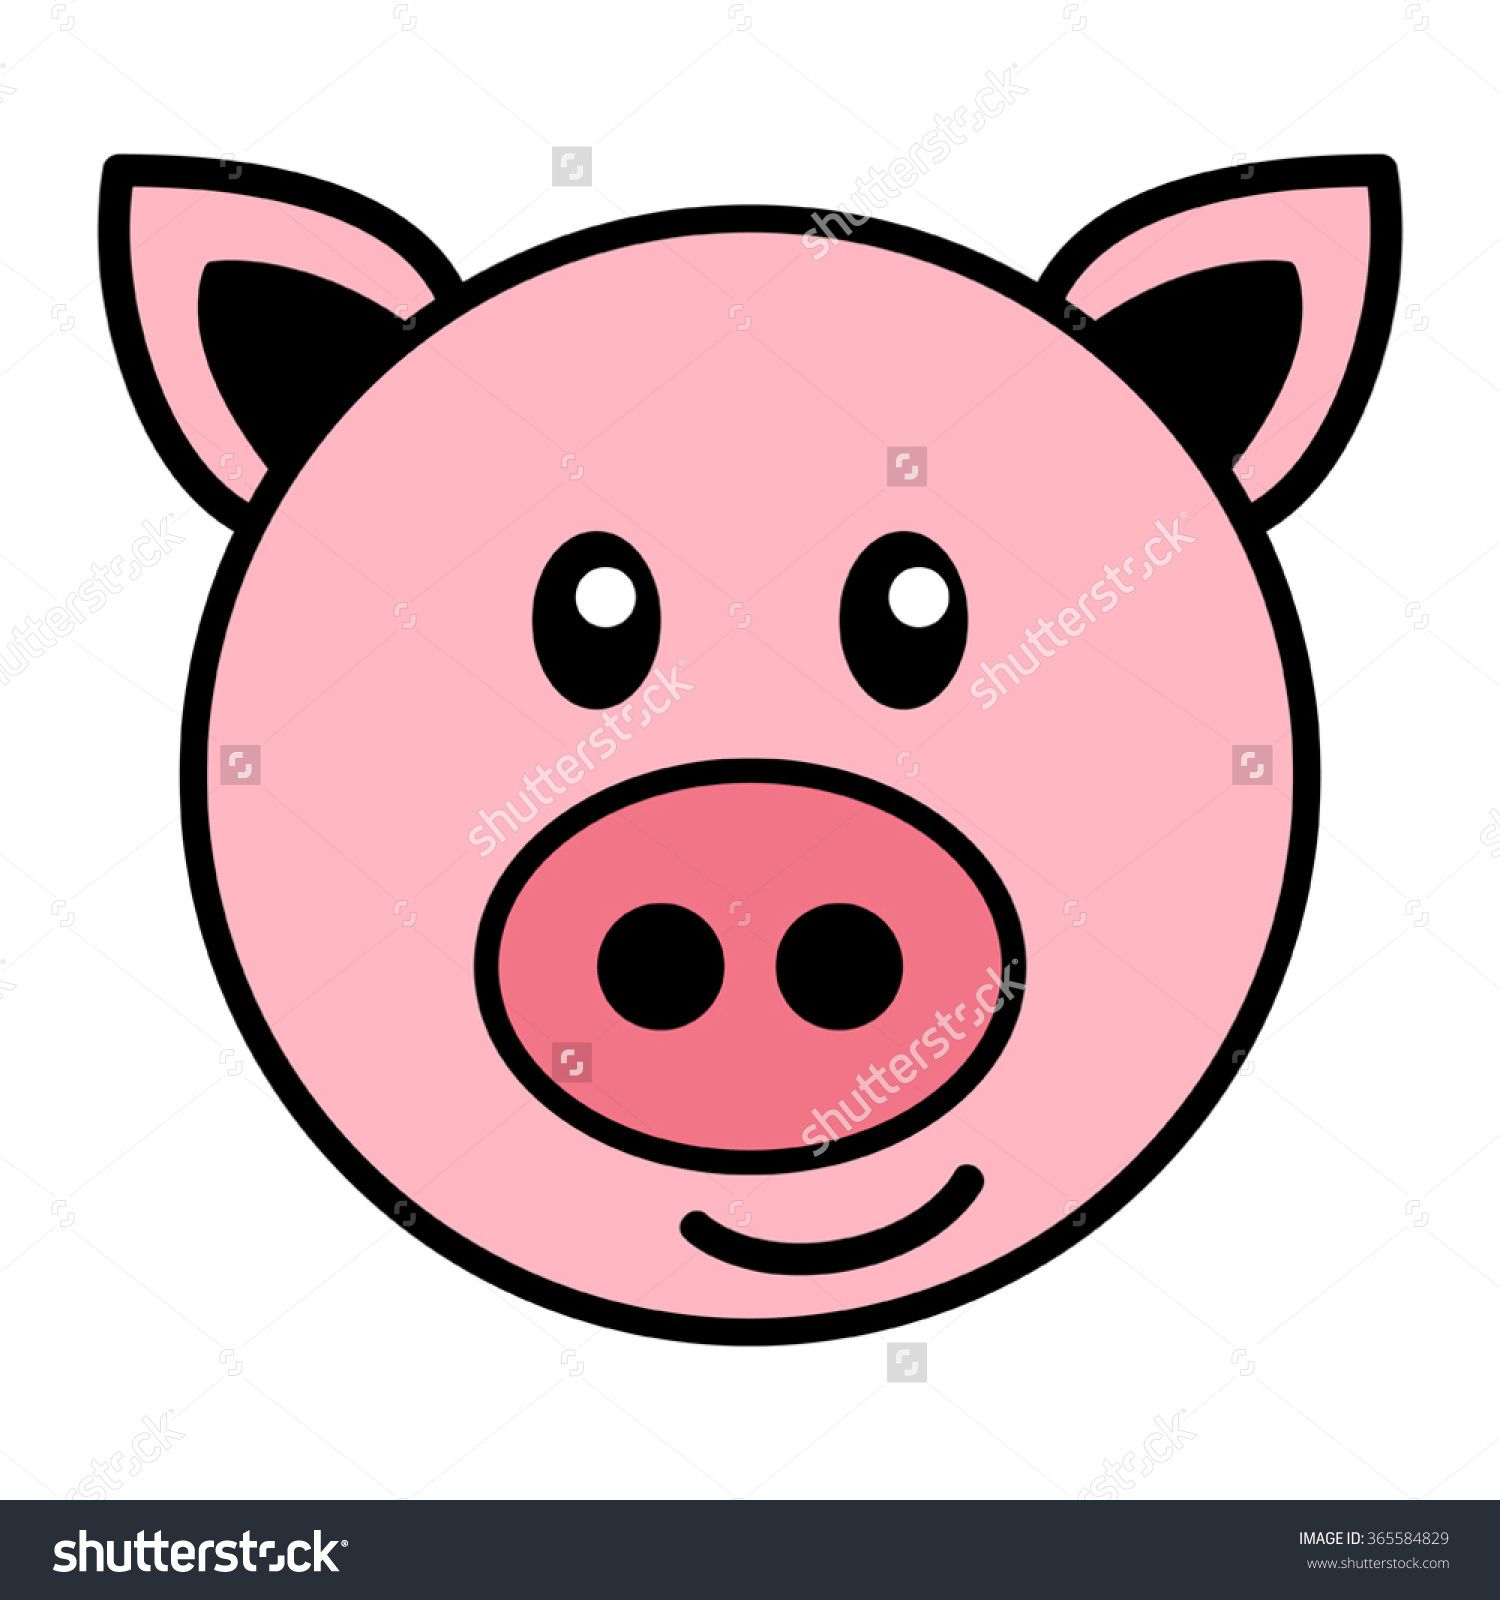 Image Result For Simple Cartoon Pig Face Rock Art Pinterest